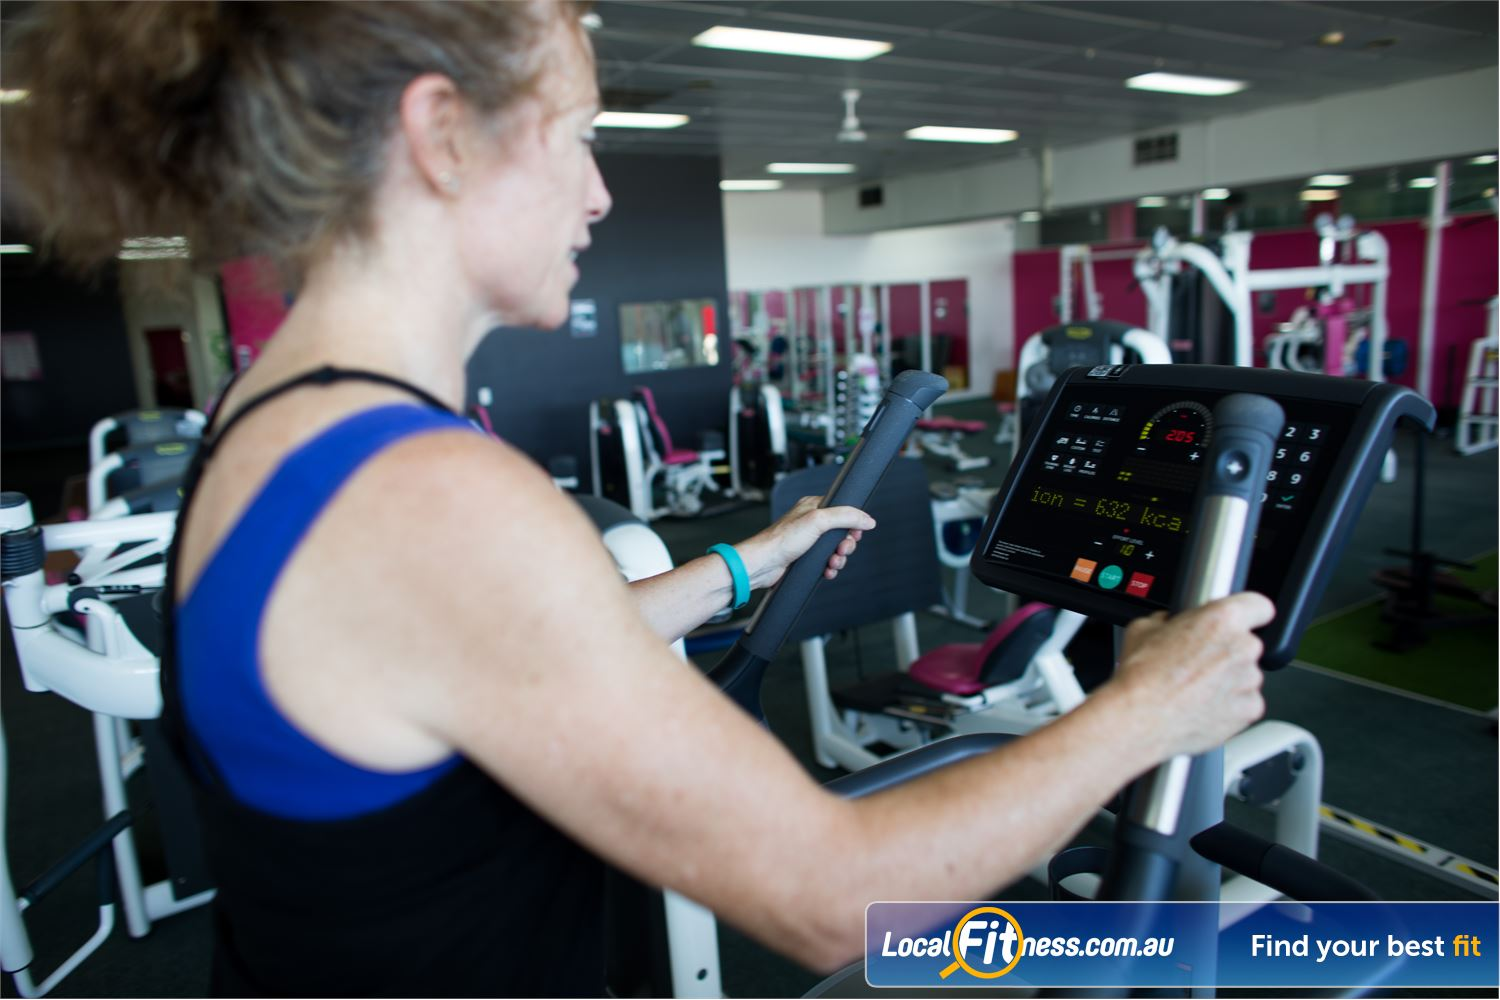 Fernwood Fitness Everton Park Fernwood Everton Park provides a fun, friendly women's only cardio environment.